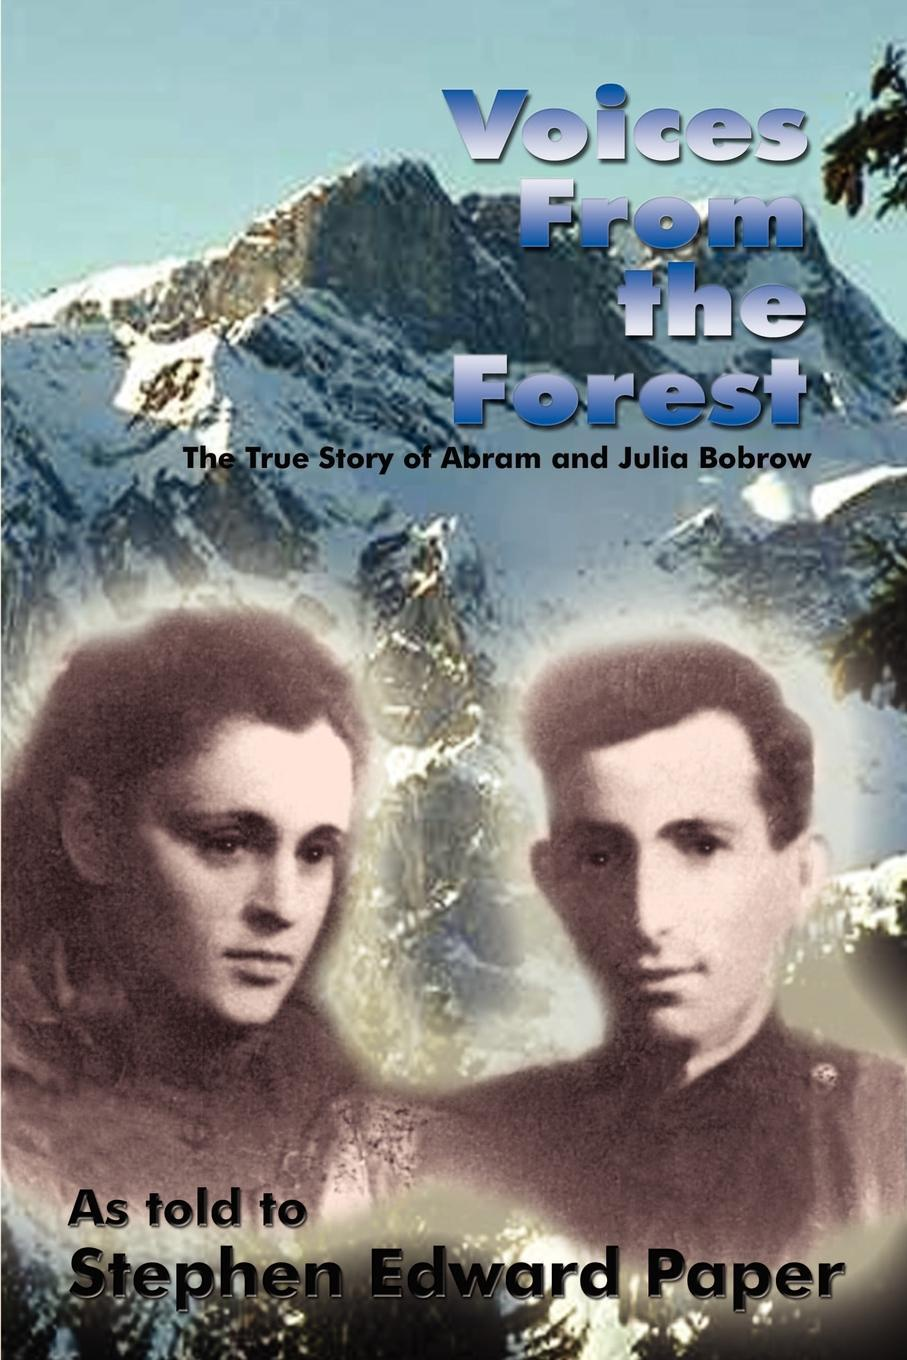 Stephen Paper Voices From the Forest. The Story of Abram and Julia Bobrow kathleen norris the story of julia page